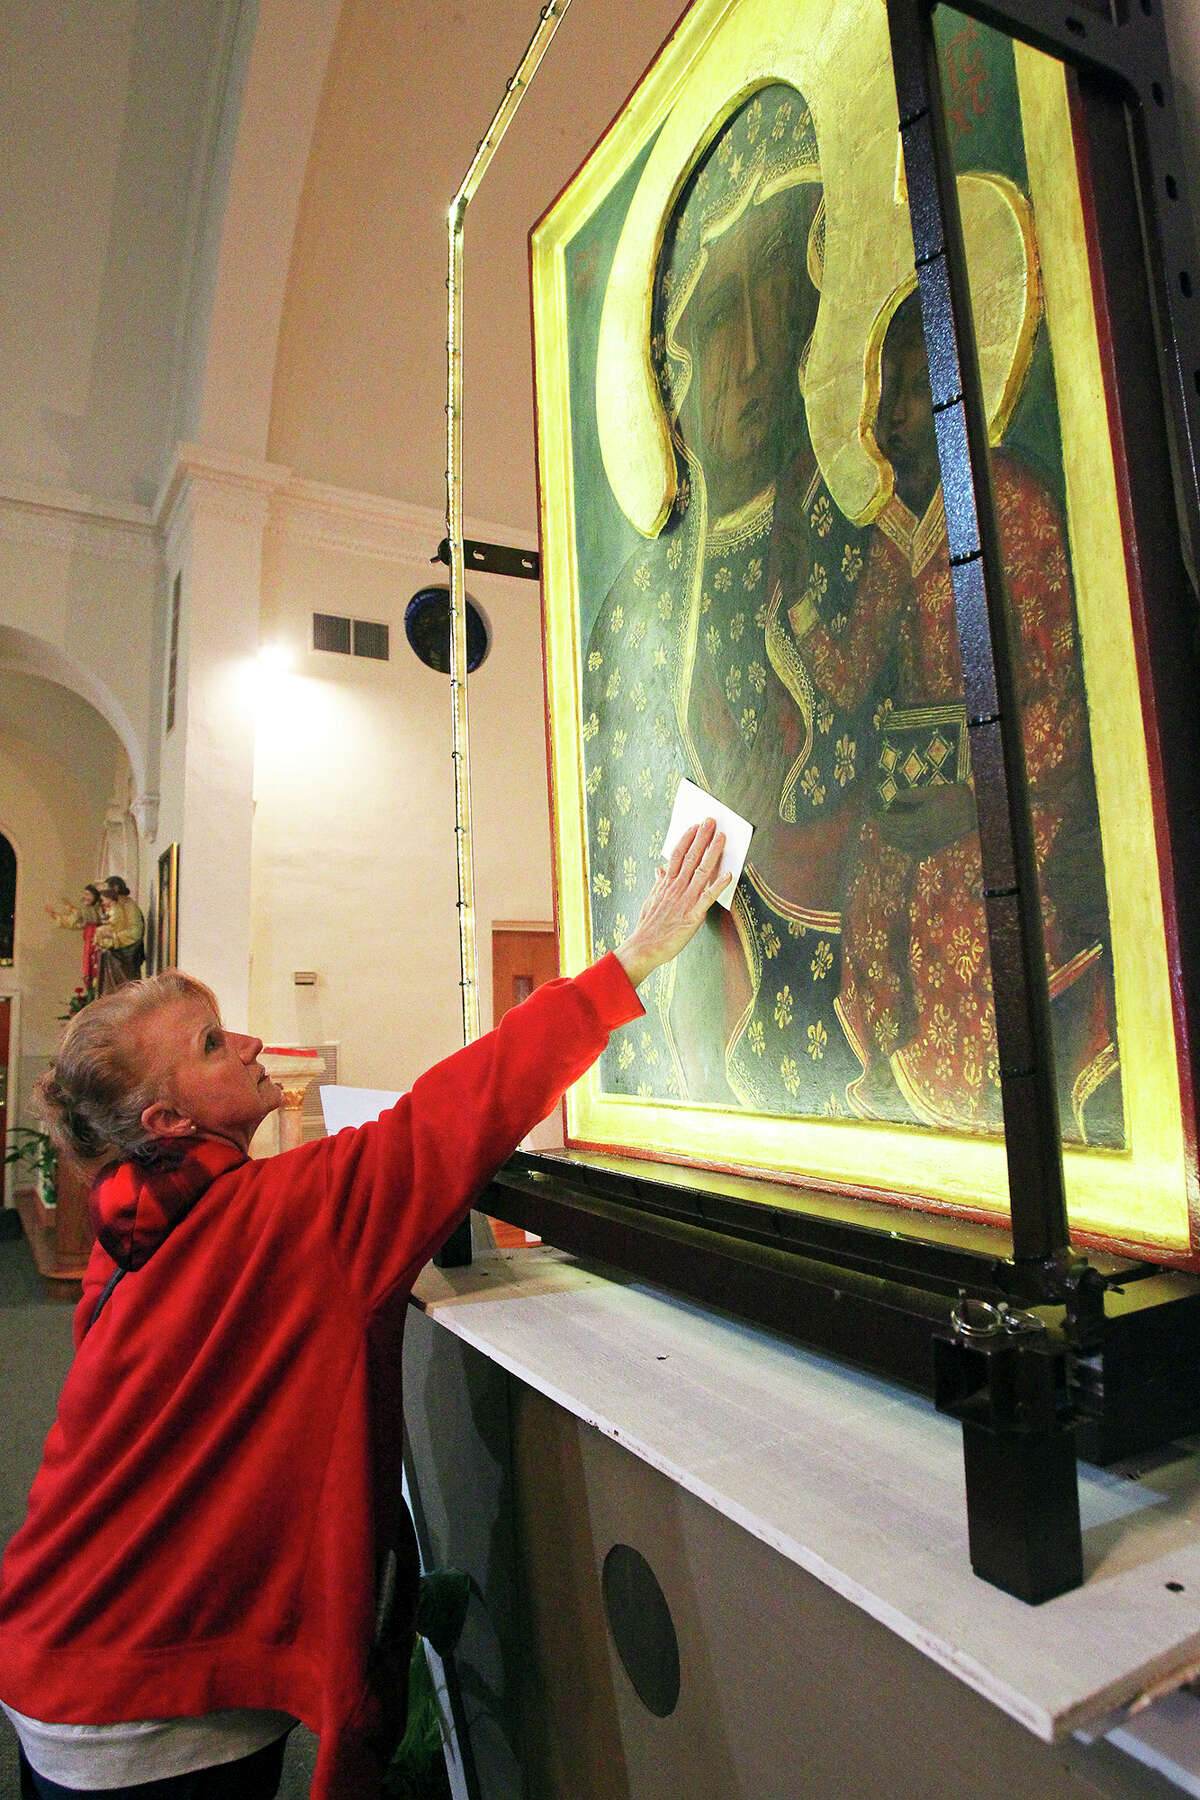 Charlotte Jones holds a photo of her granddaughter up to Our Lady of Czestochowa, the